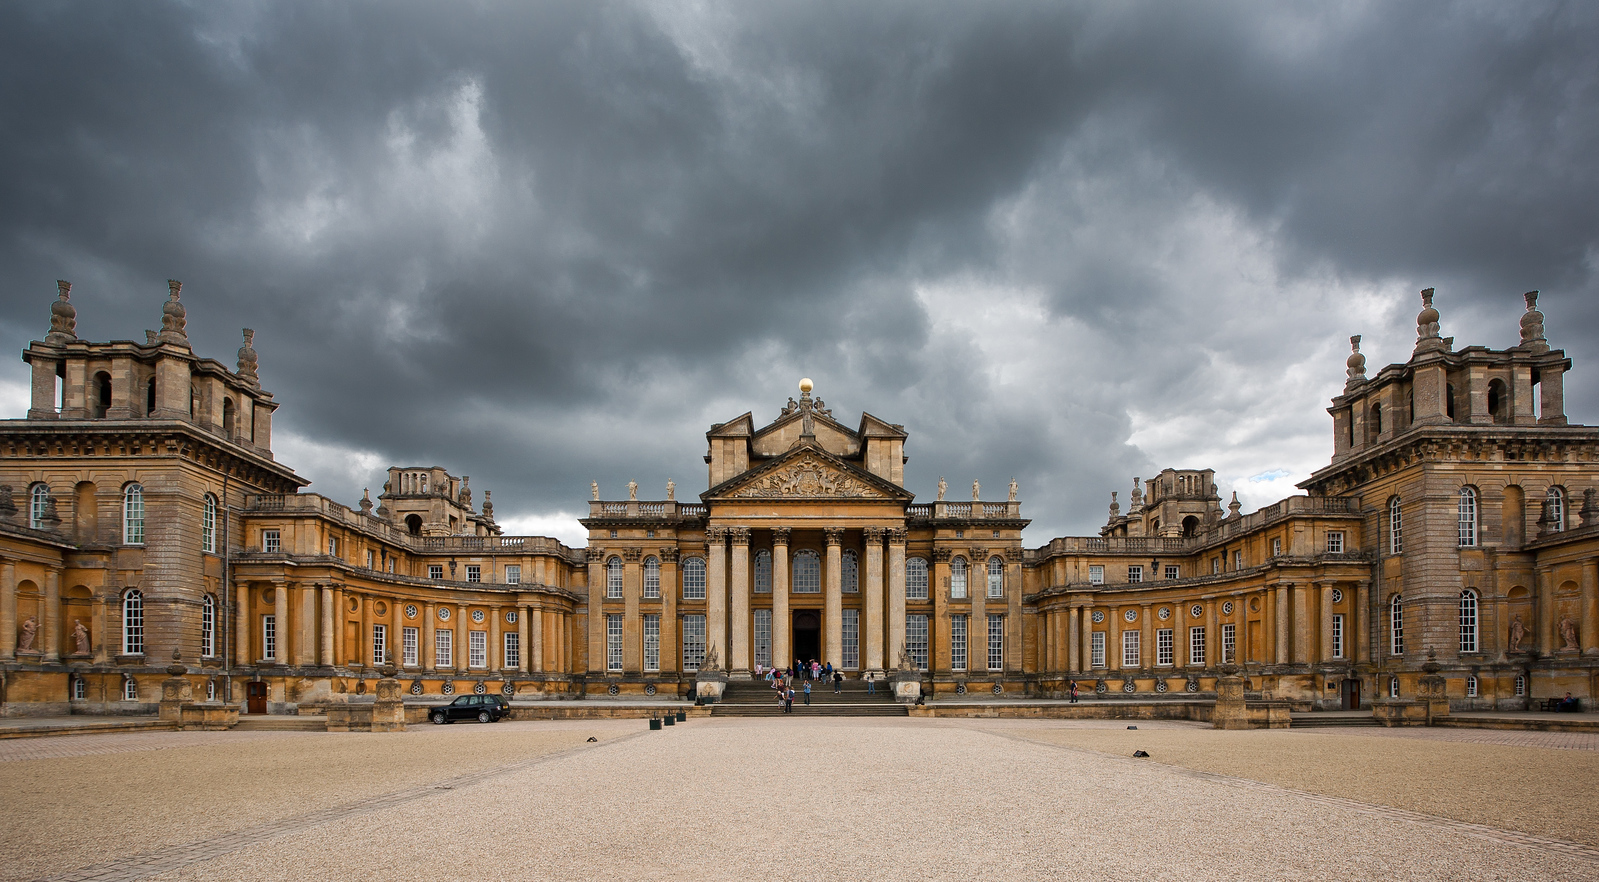 Blenheim Palace, Oxfordshire, Eng.